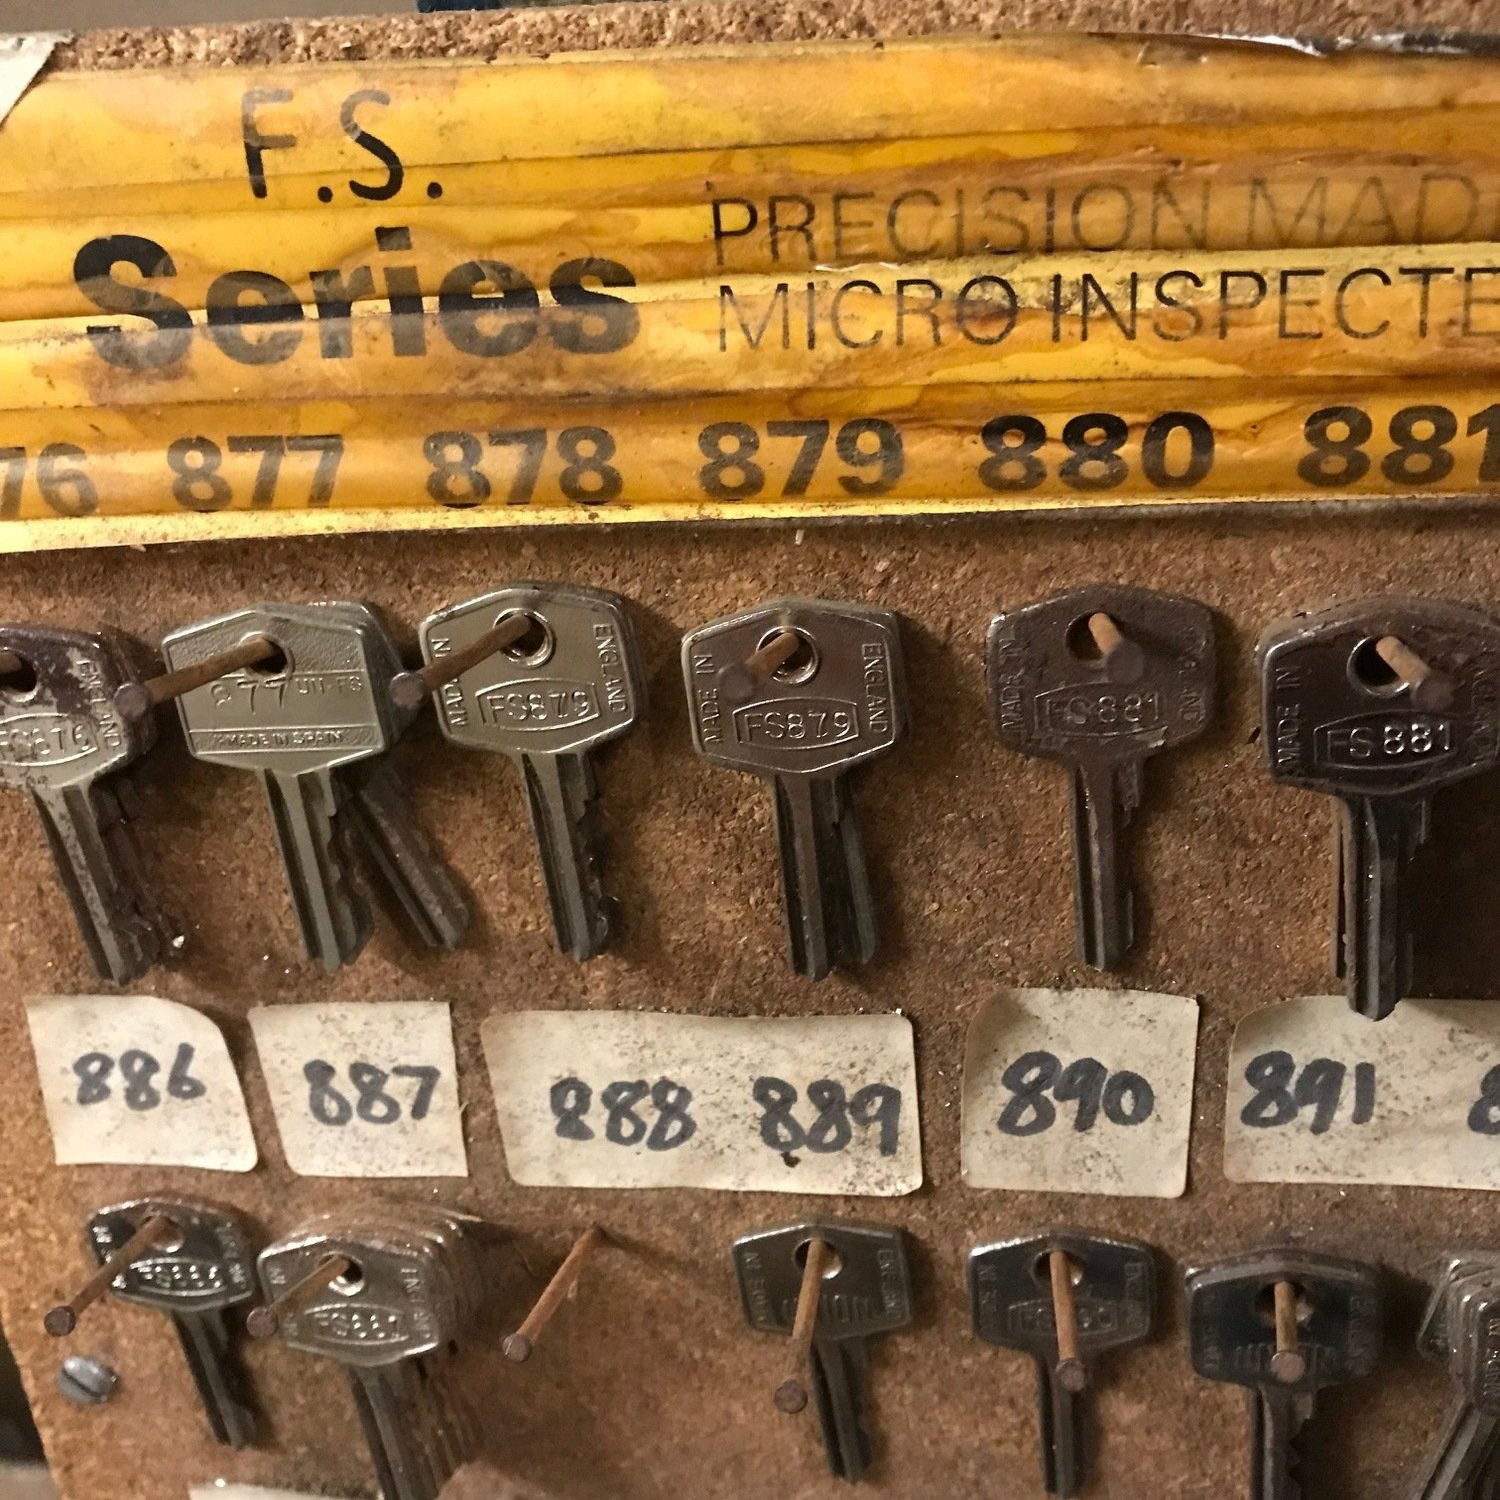 FS Series Keys